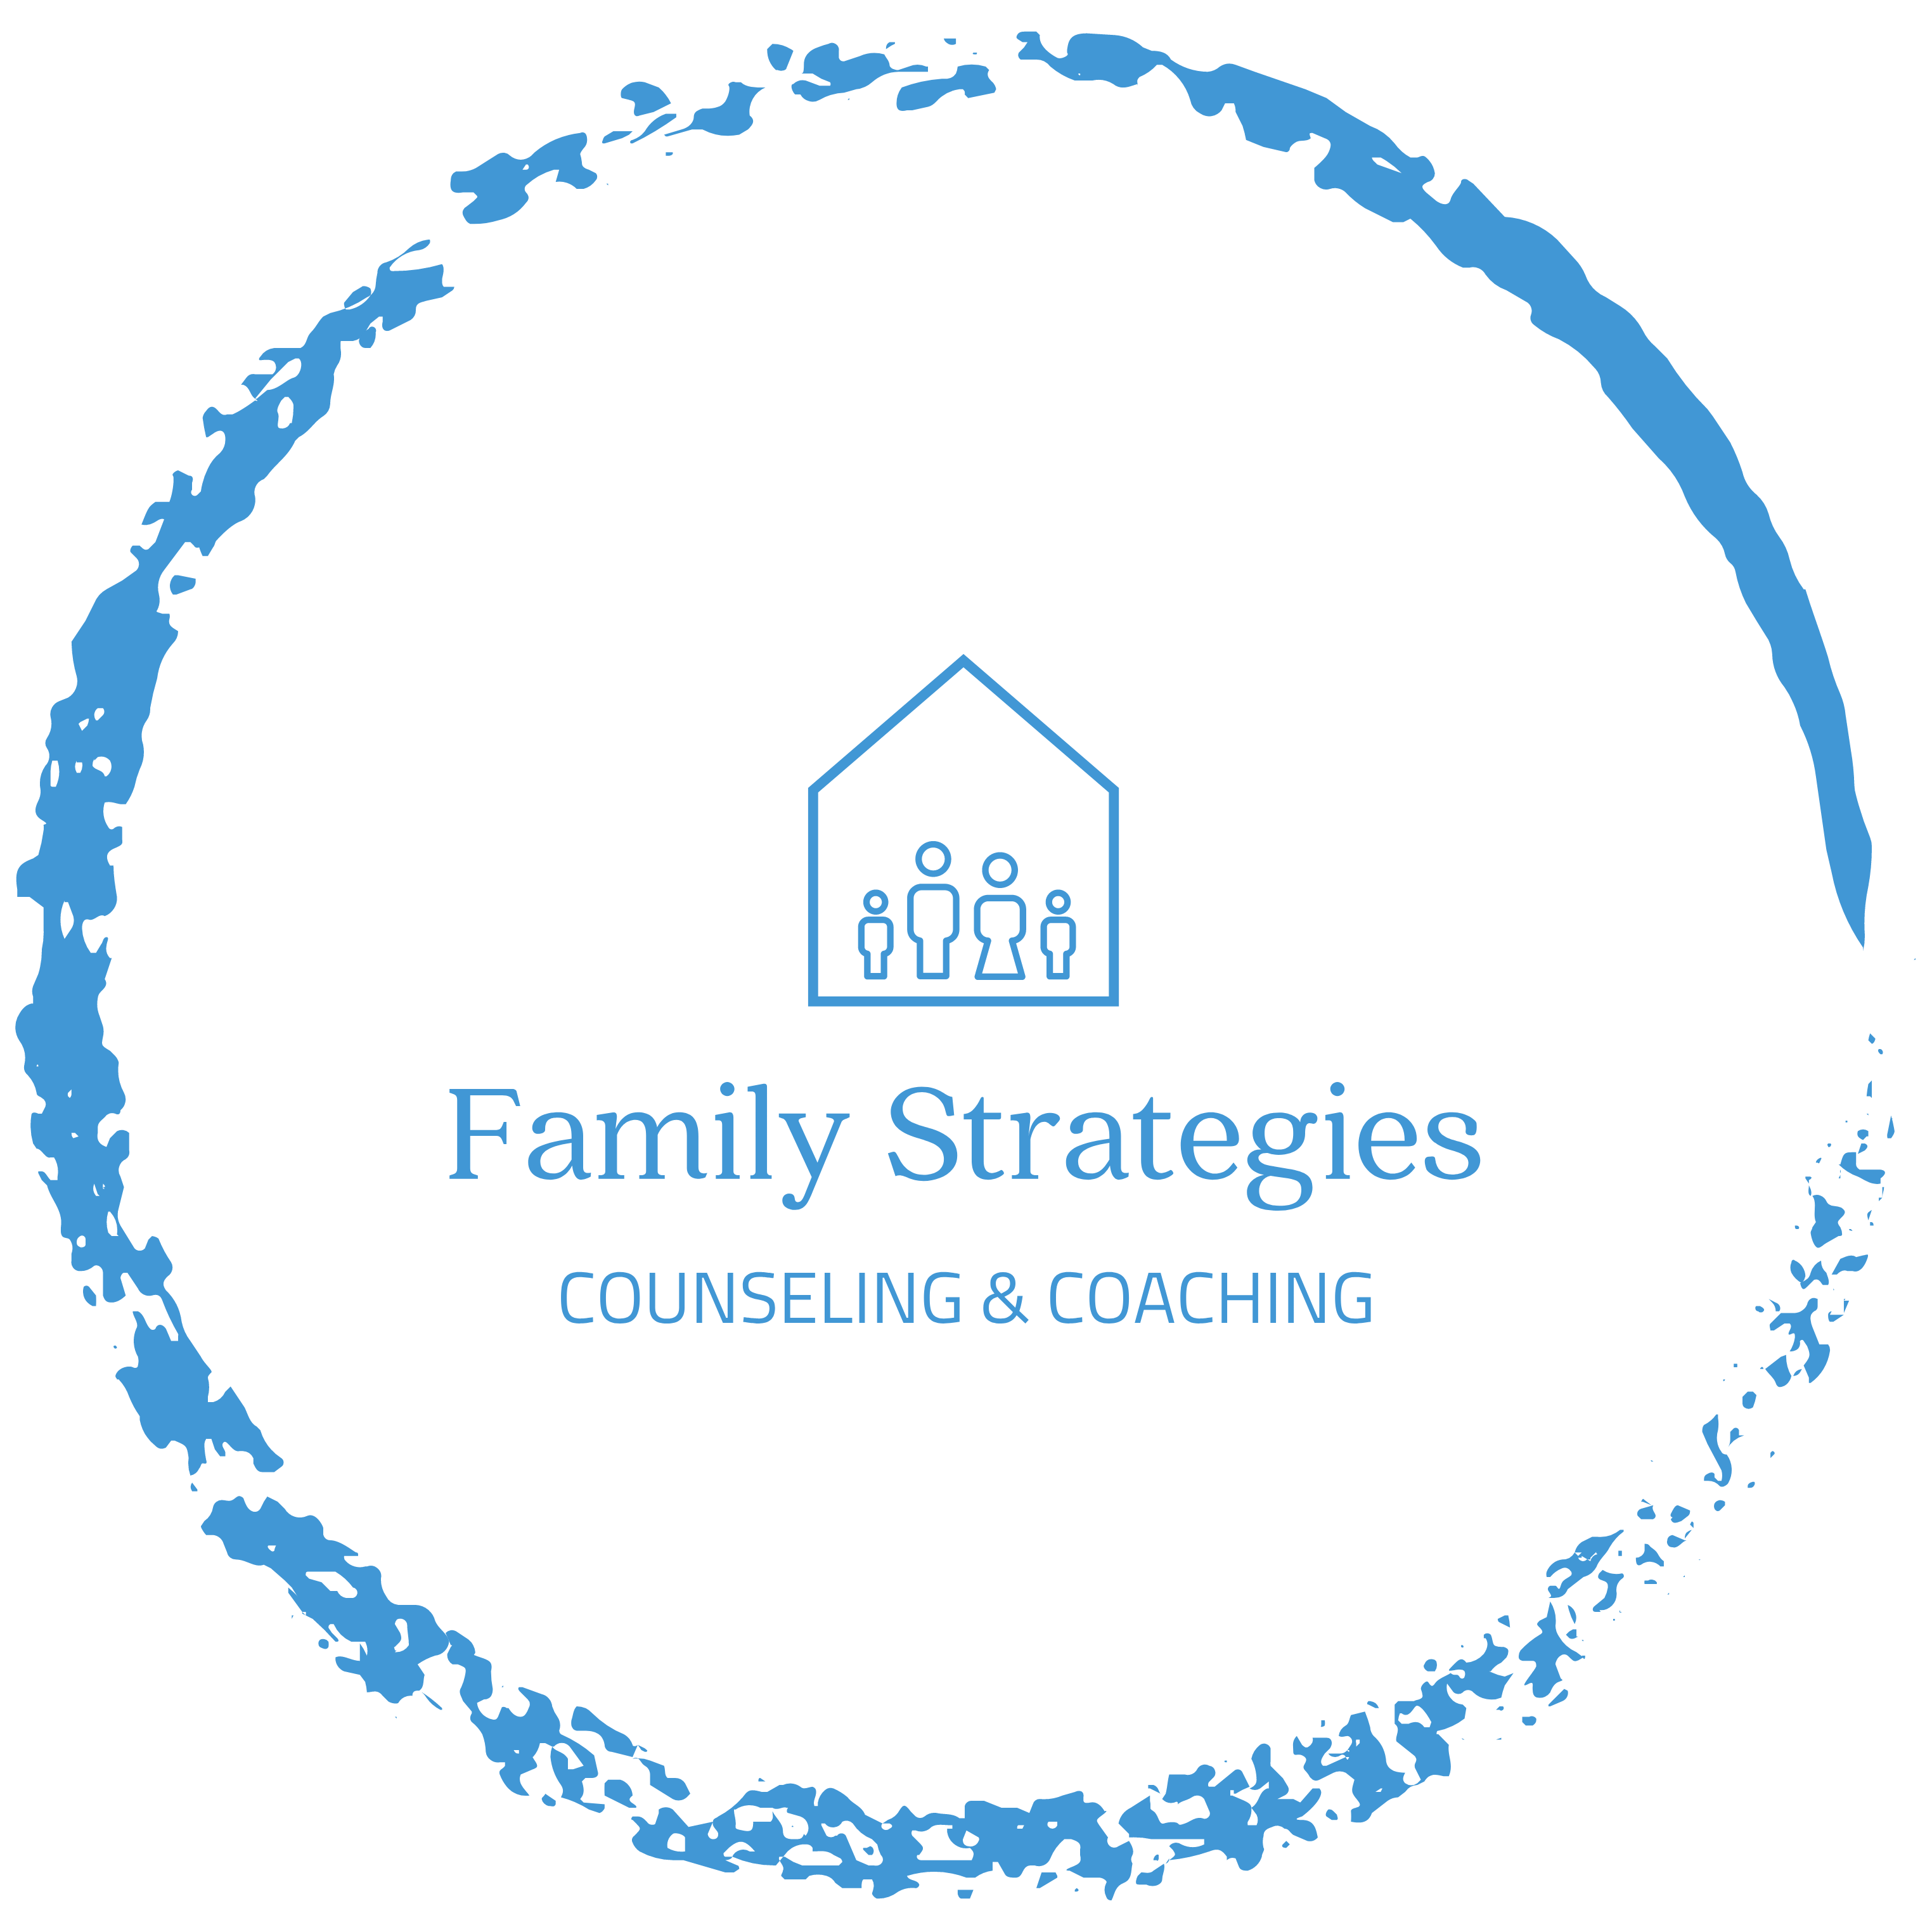 Family Strategies Counseling and Coaching